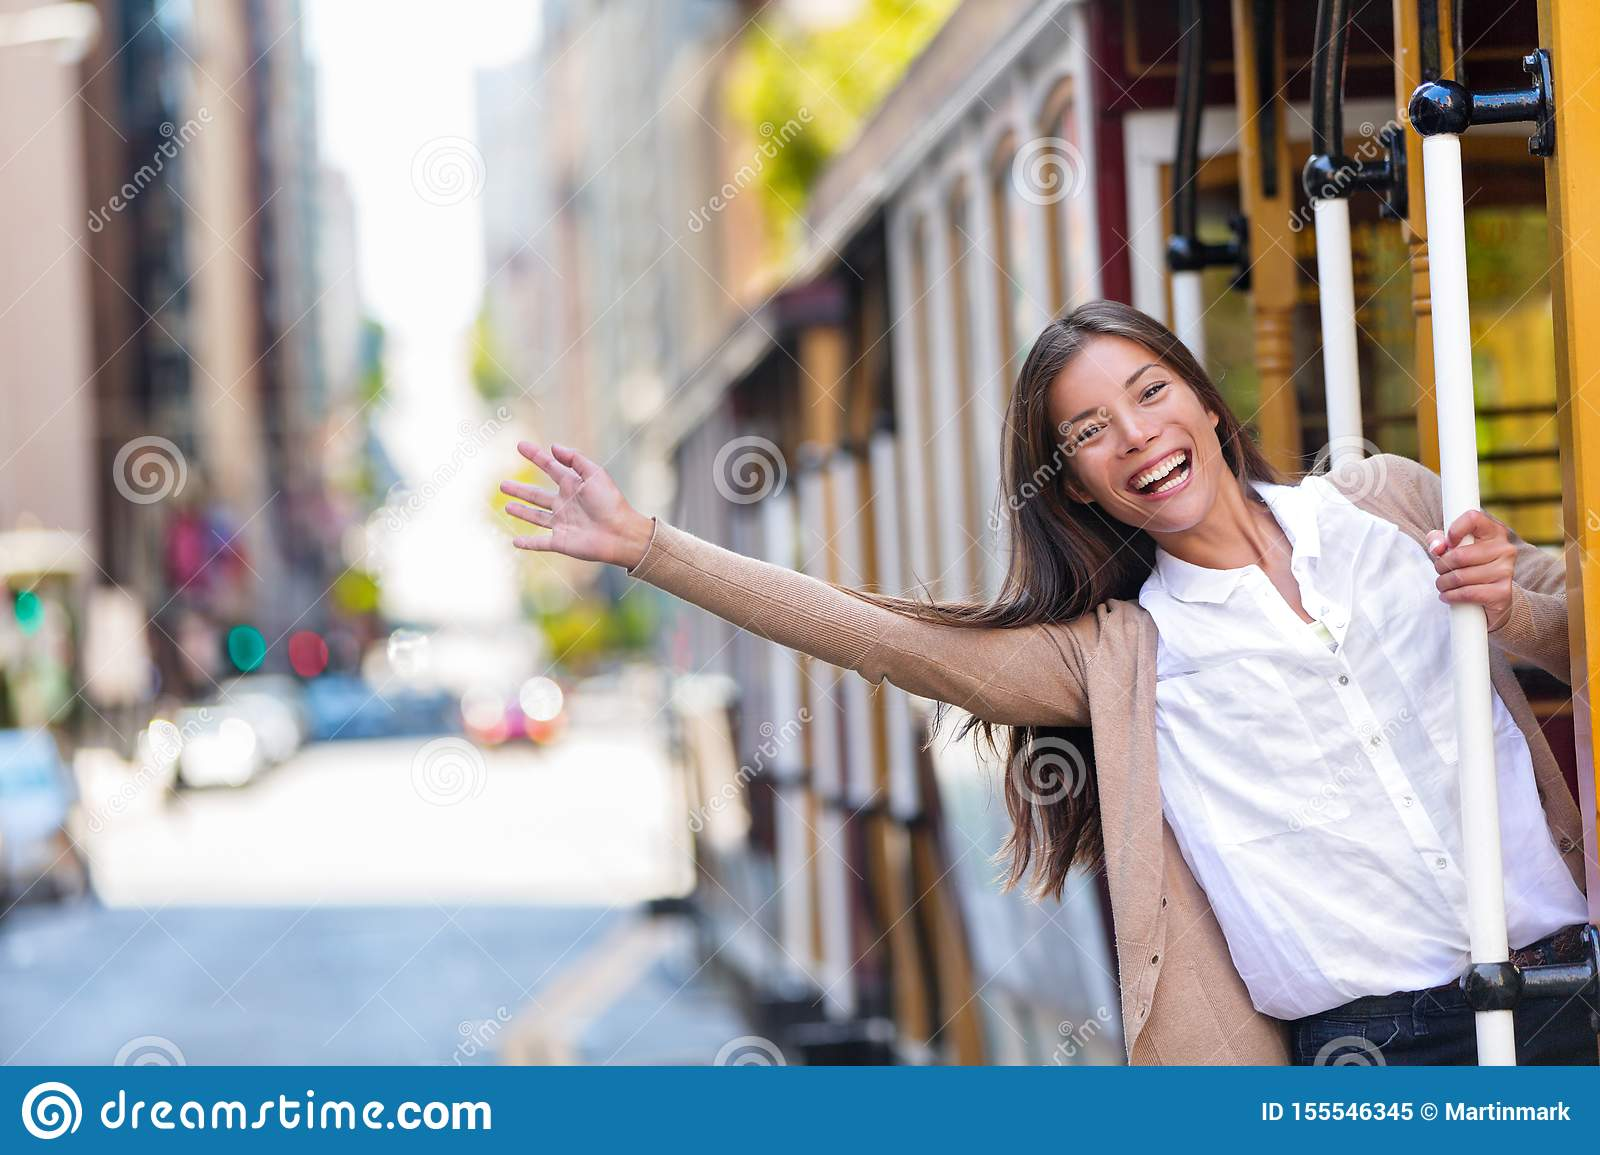 Happy Asian young woman excited having fun riding the popular tourist attraction tramway cable car system in San Francisco city,